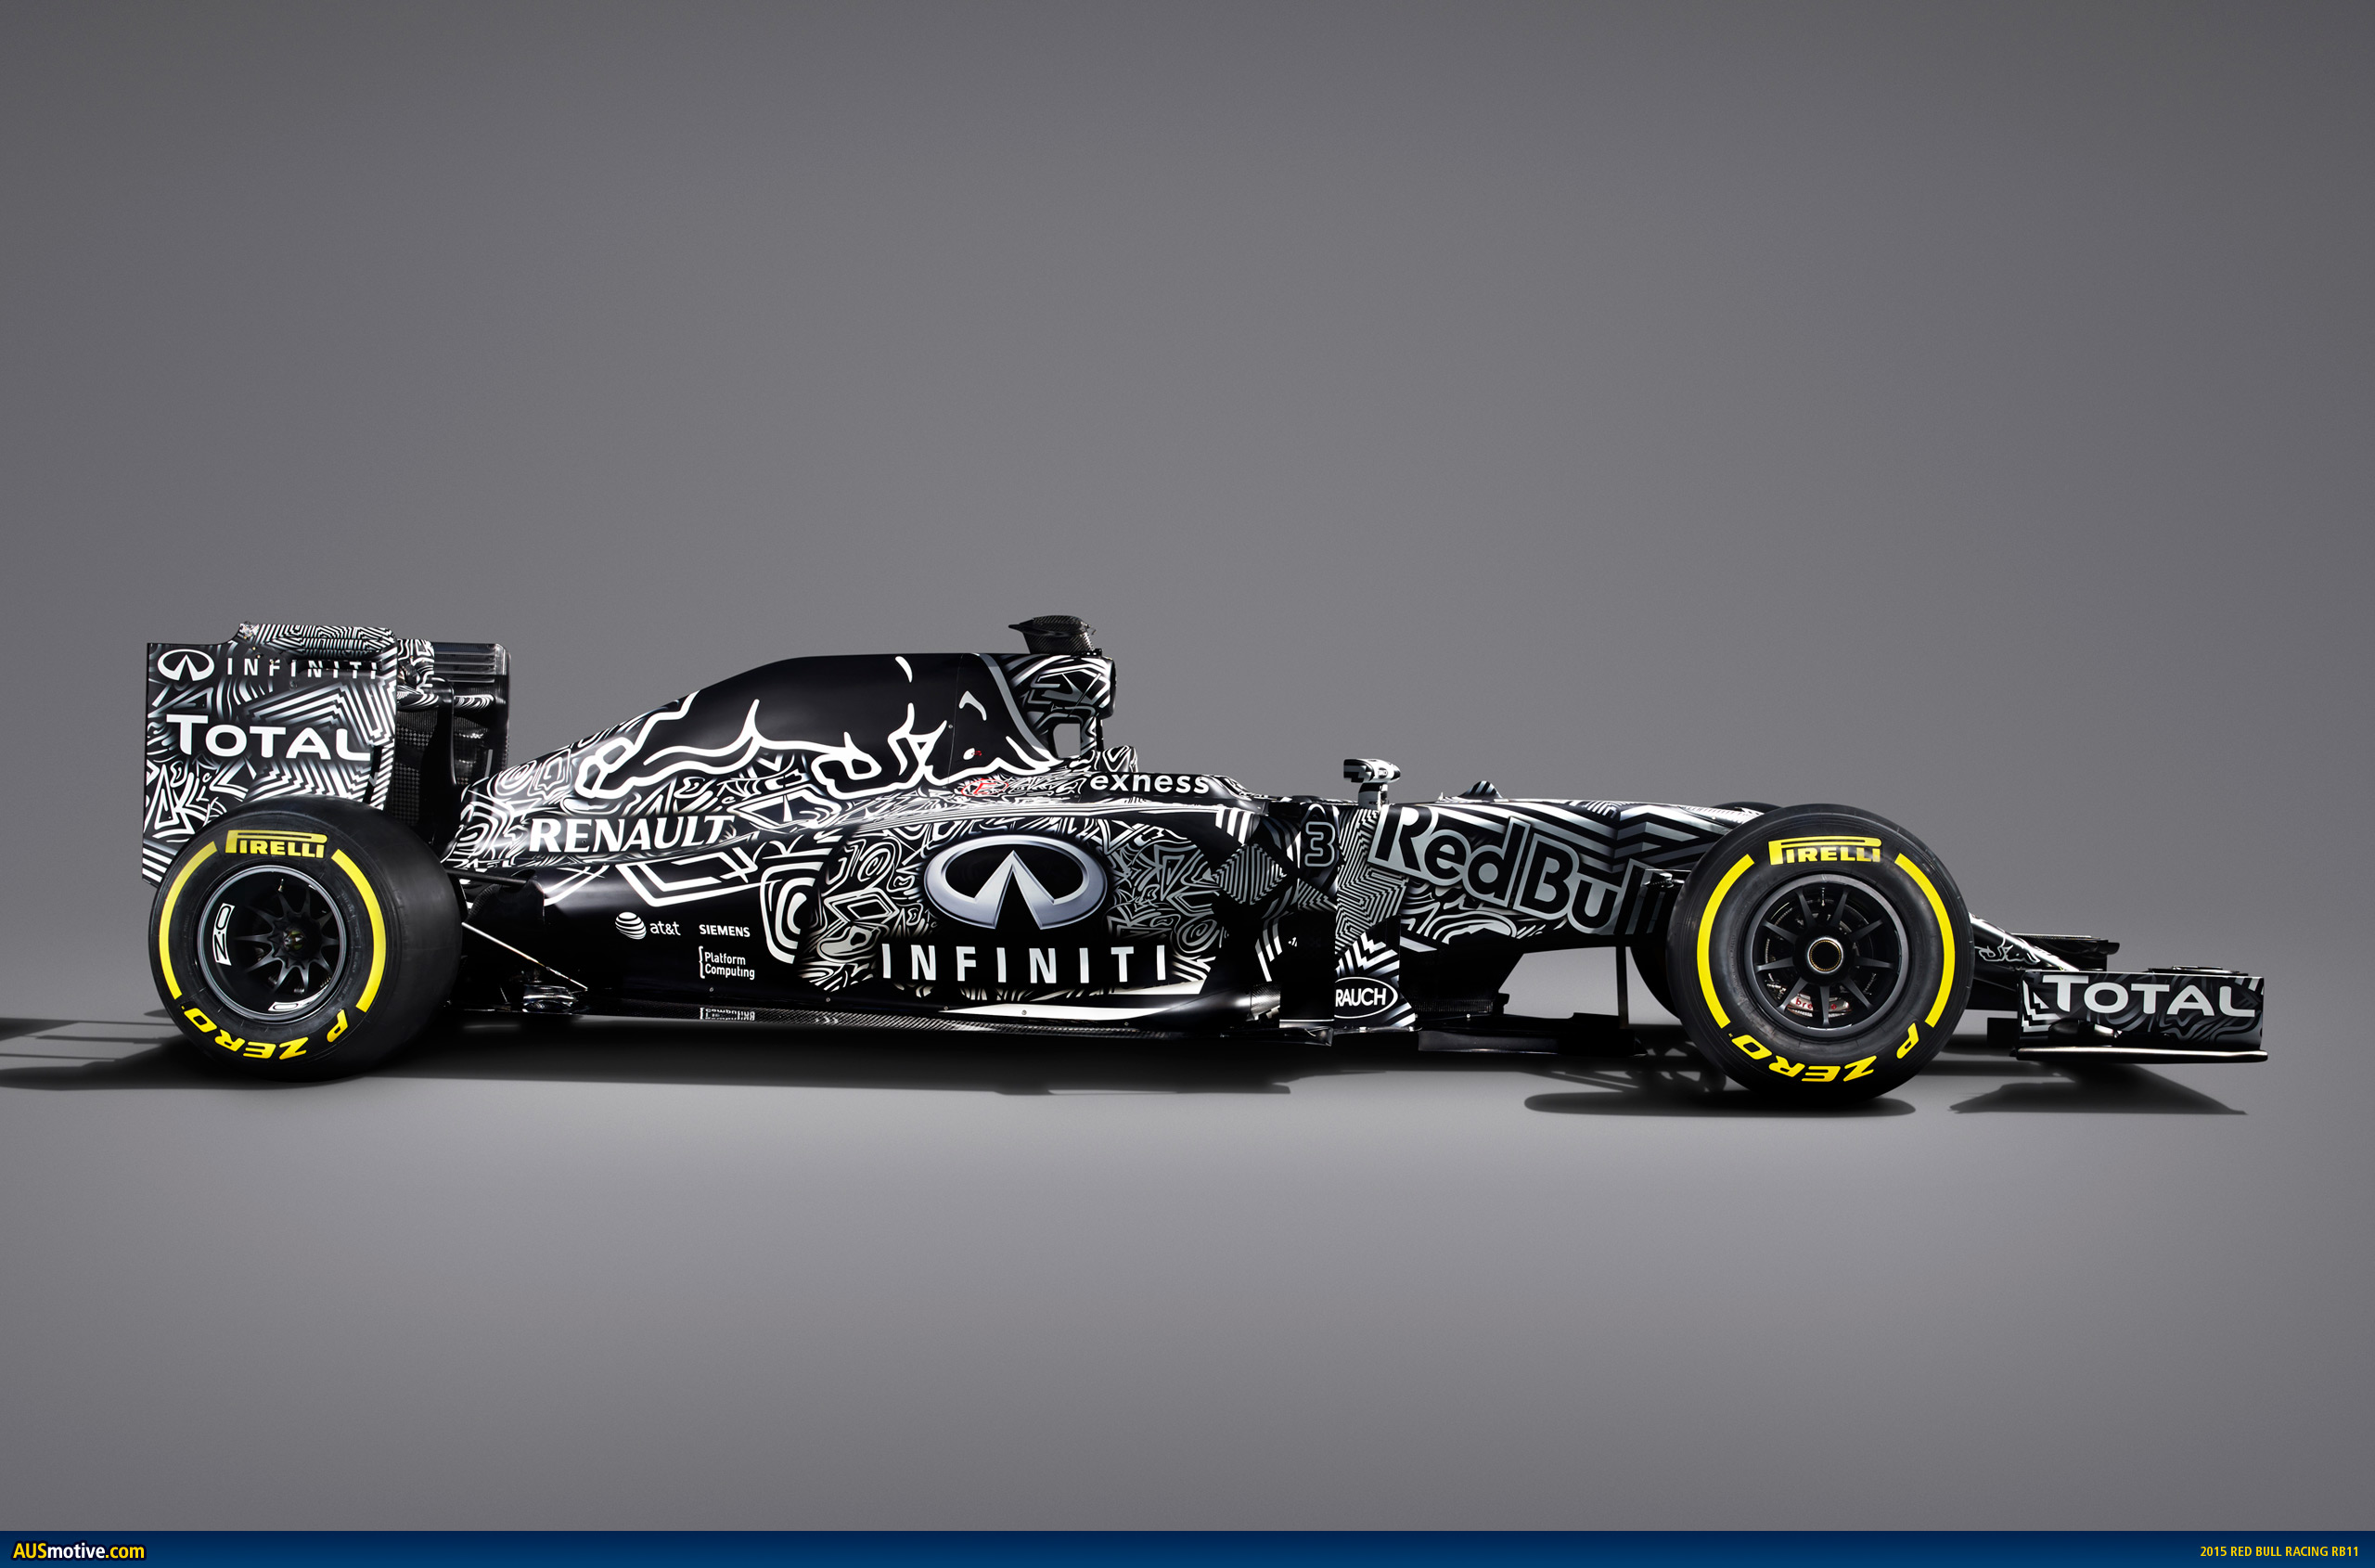 2015 f1 rb11 autoblog - photo #16